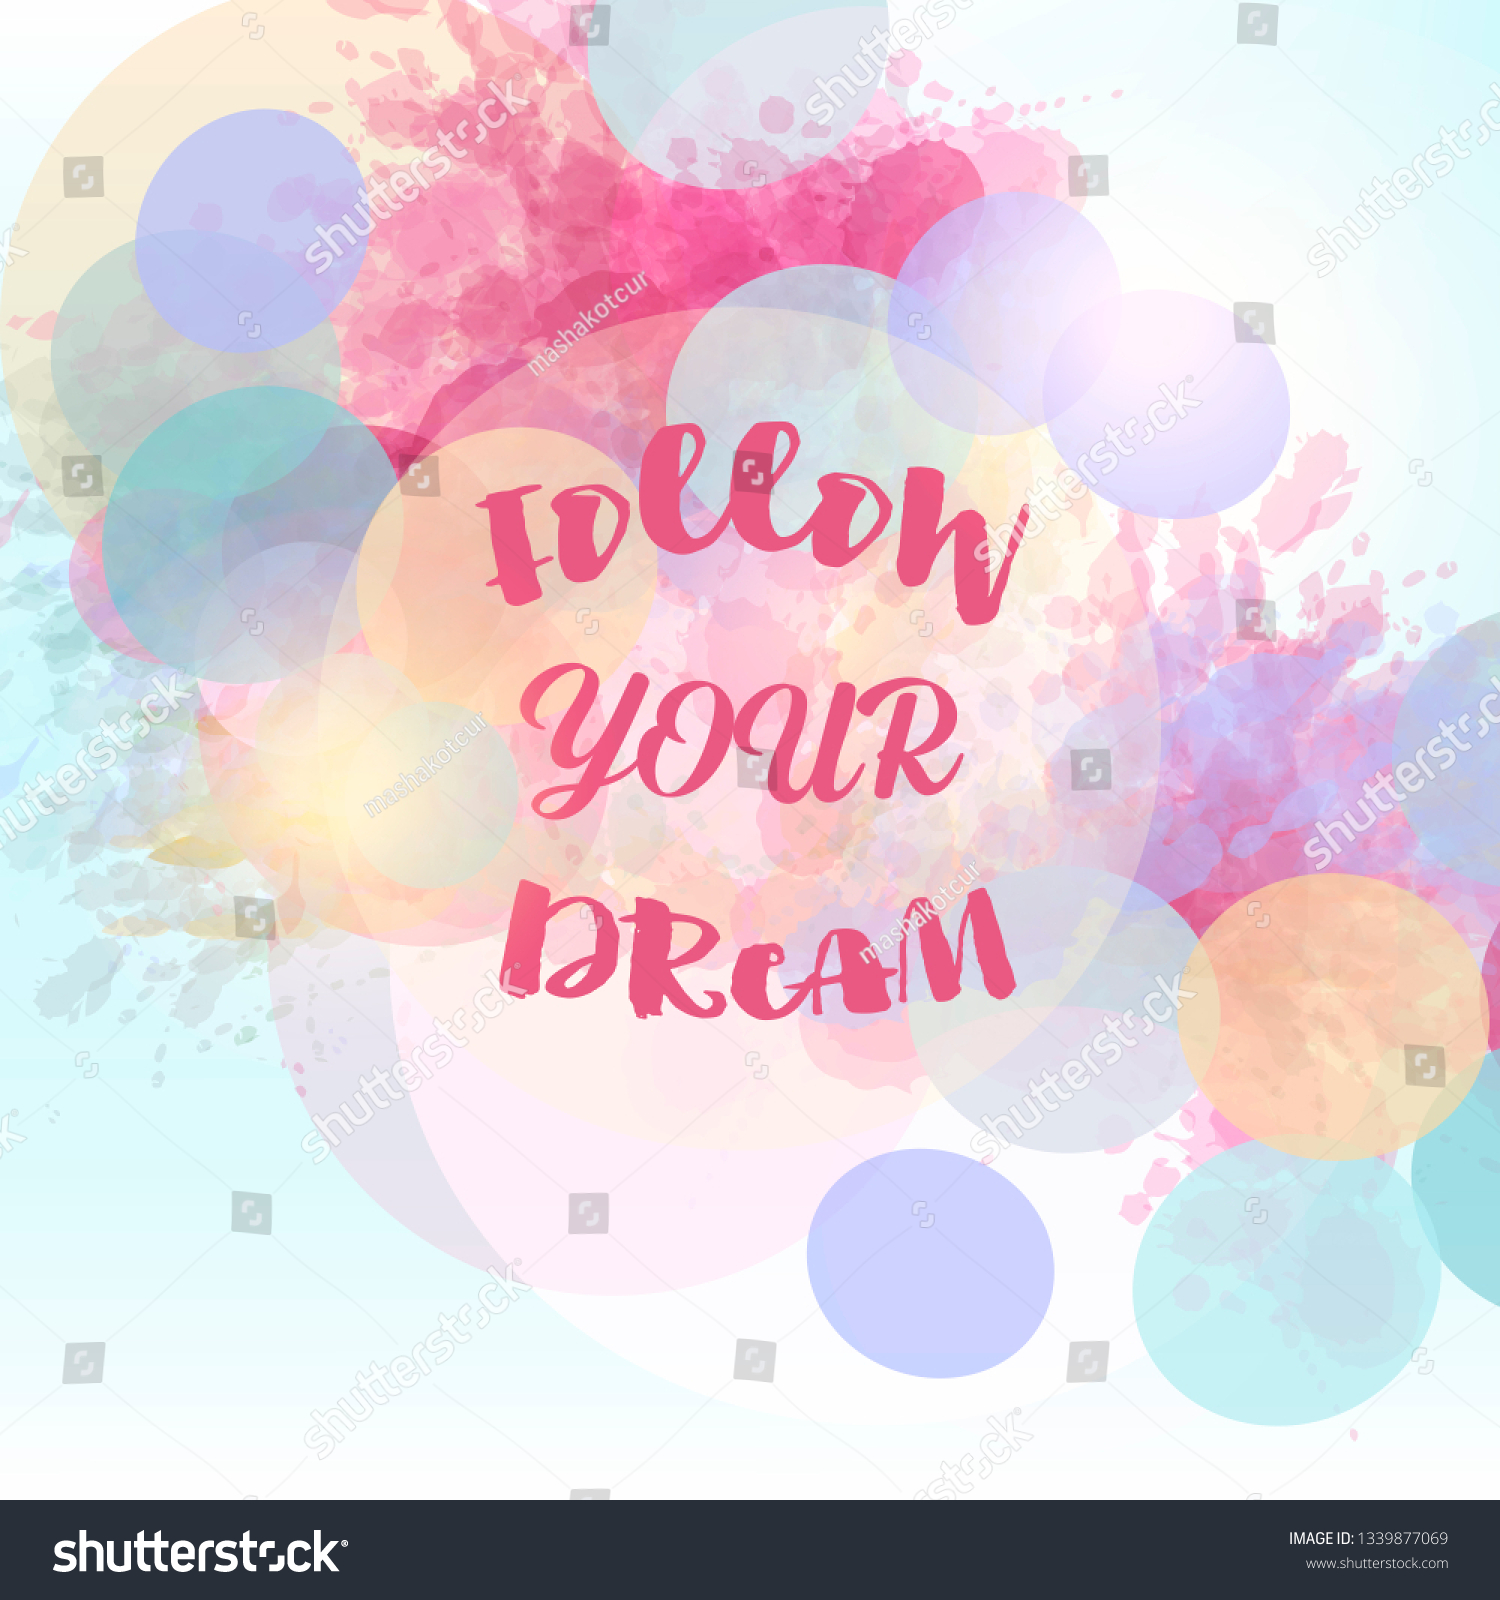 Art Vector Quote Follow Your Dream Stock Vector Royalty Free 1339877069